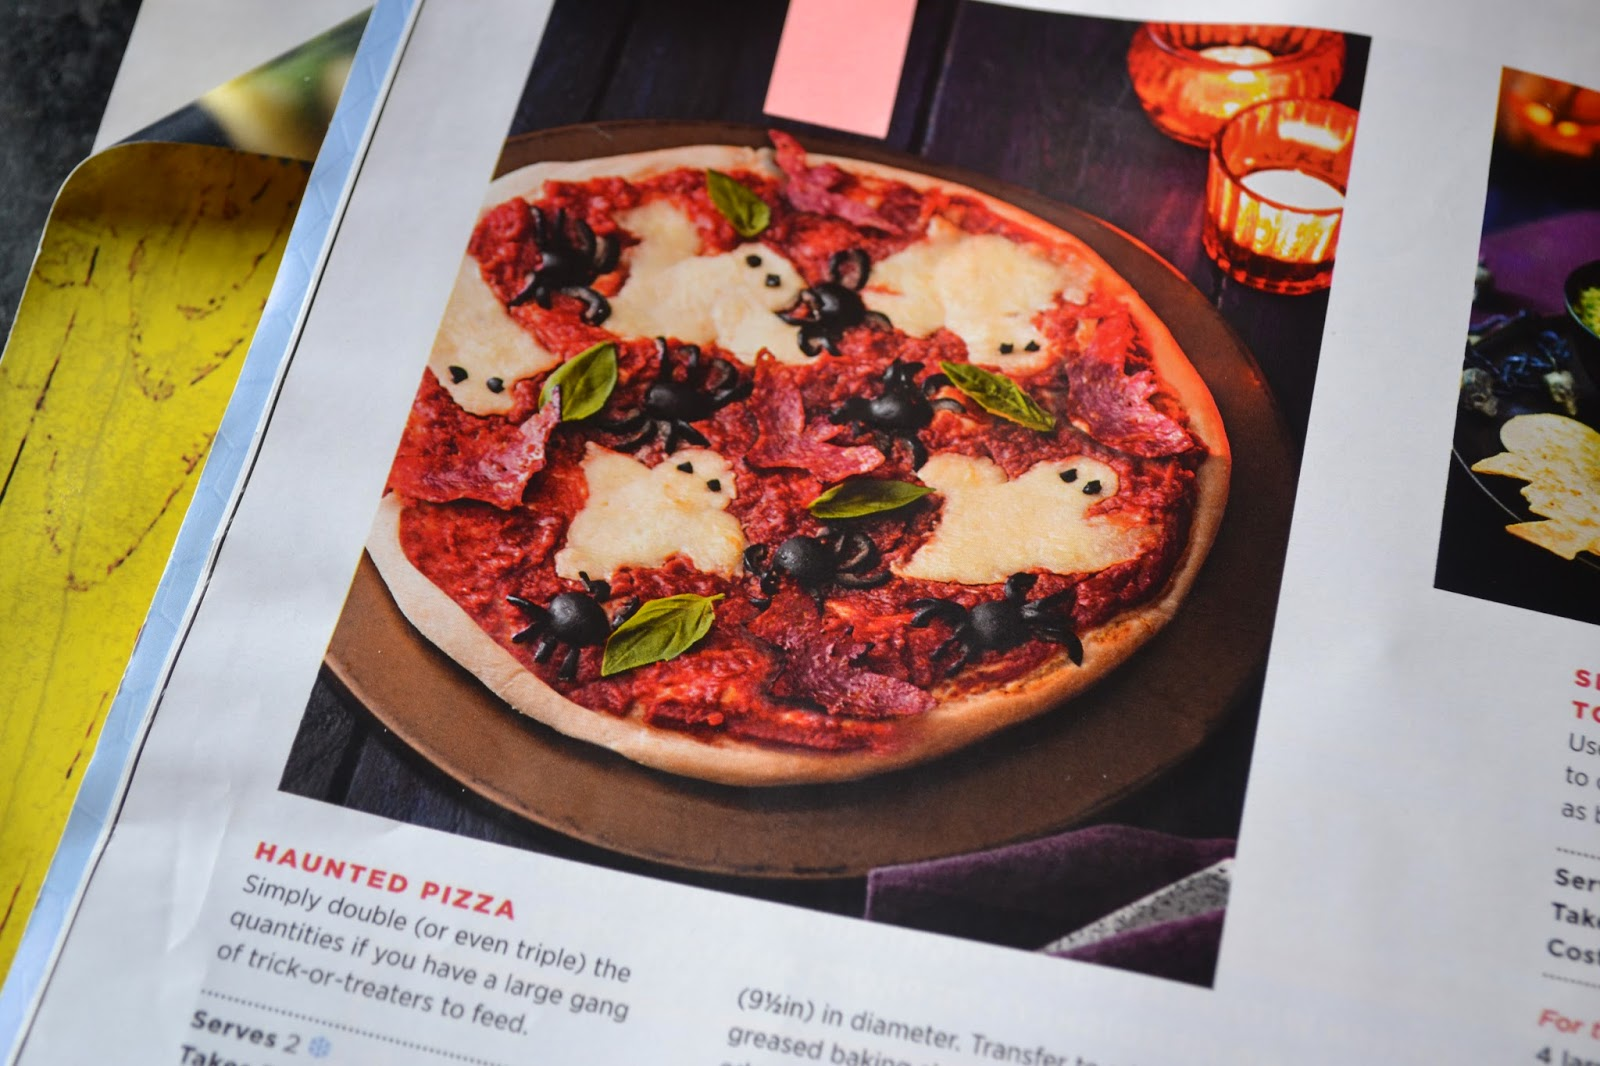 Tesco Haunted Pizza